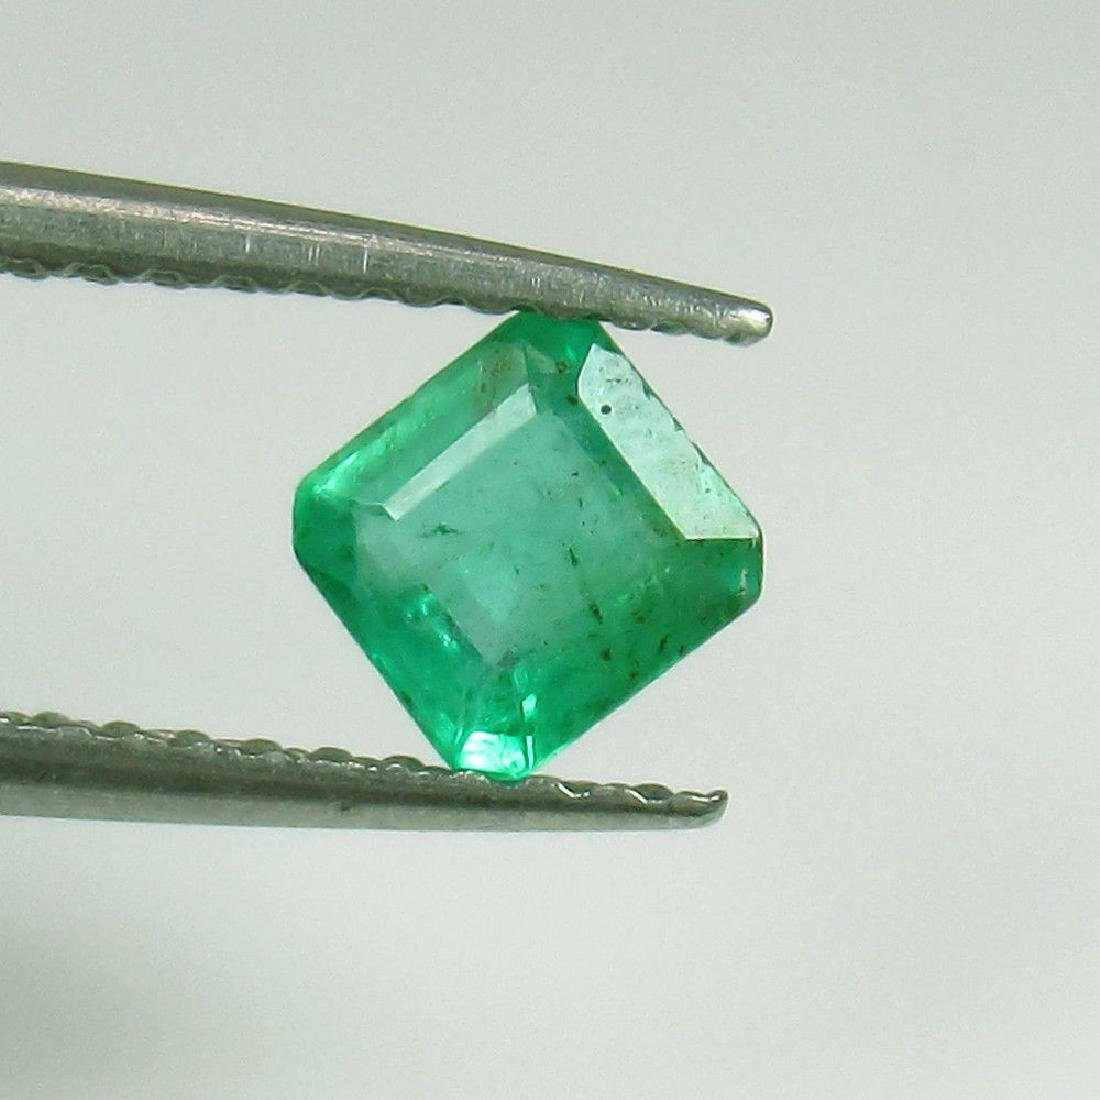 0.39 Ct Genuine Zambian Emerald 4.5X4.5 mm Square